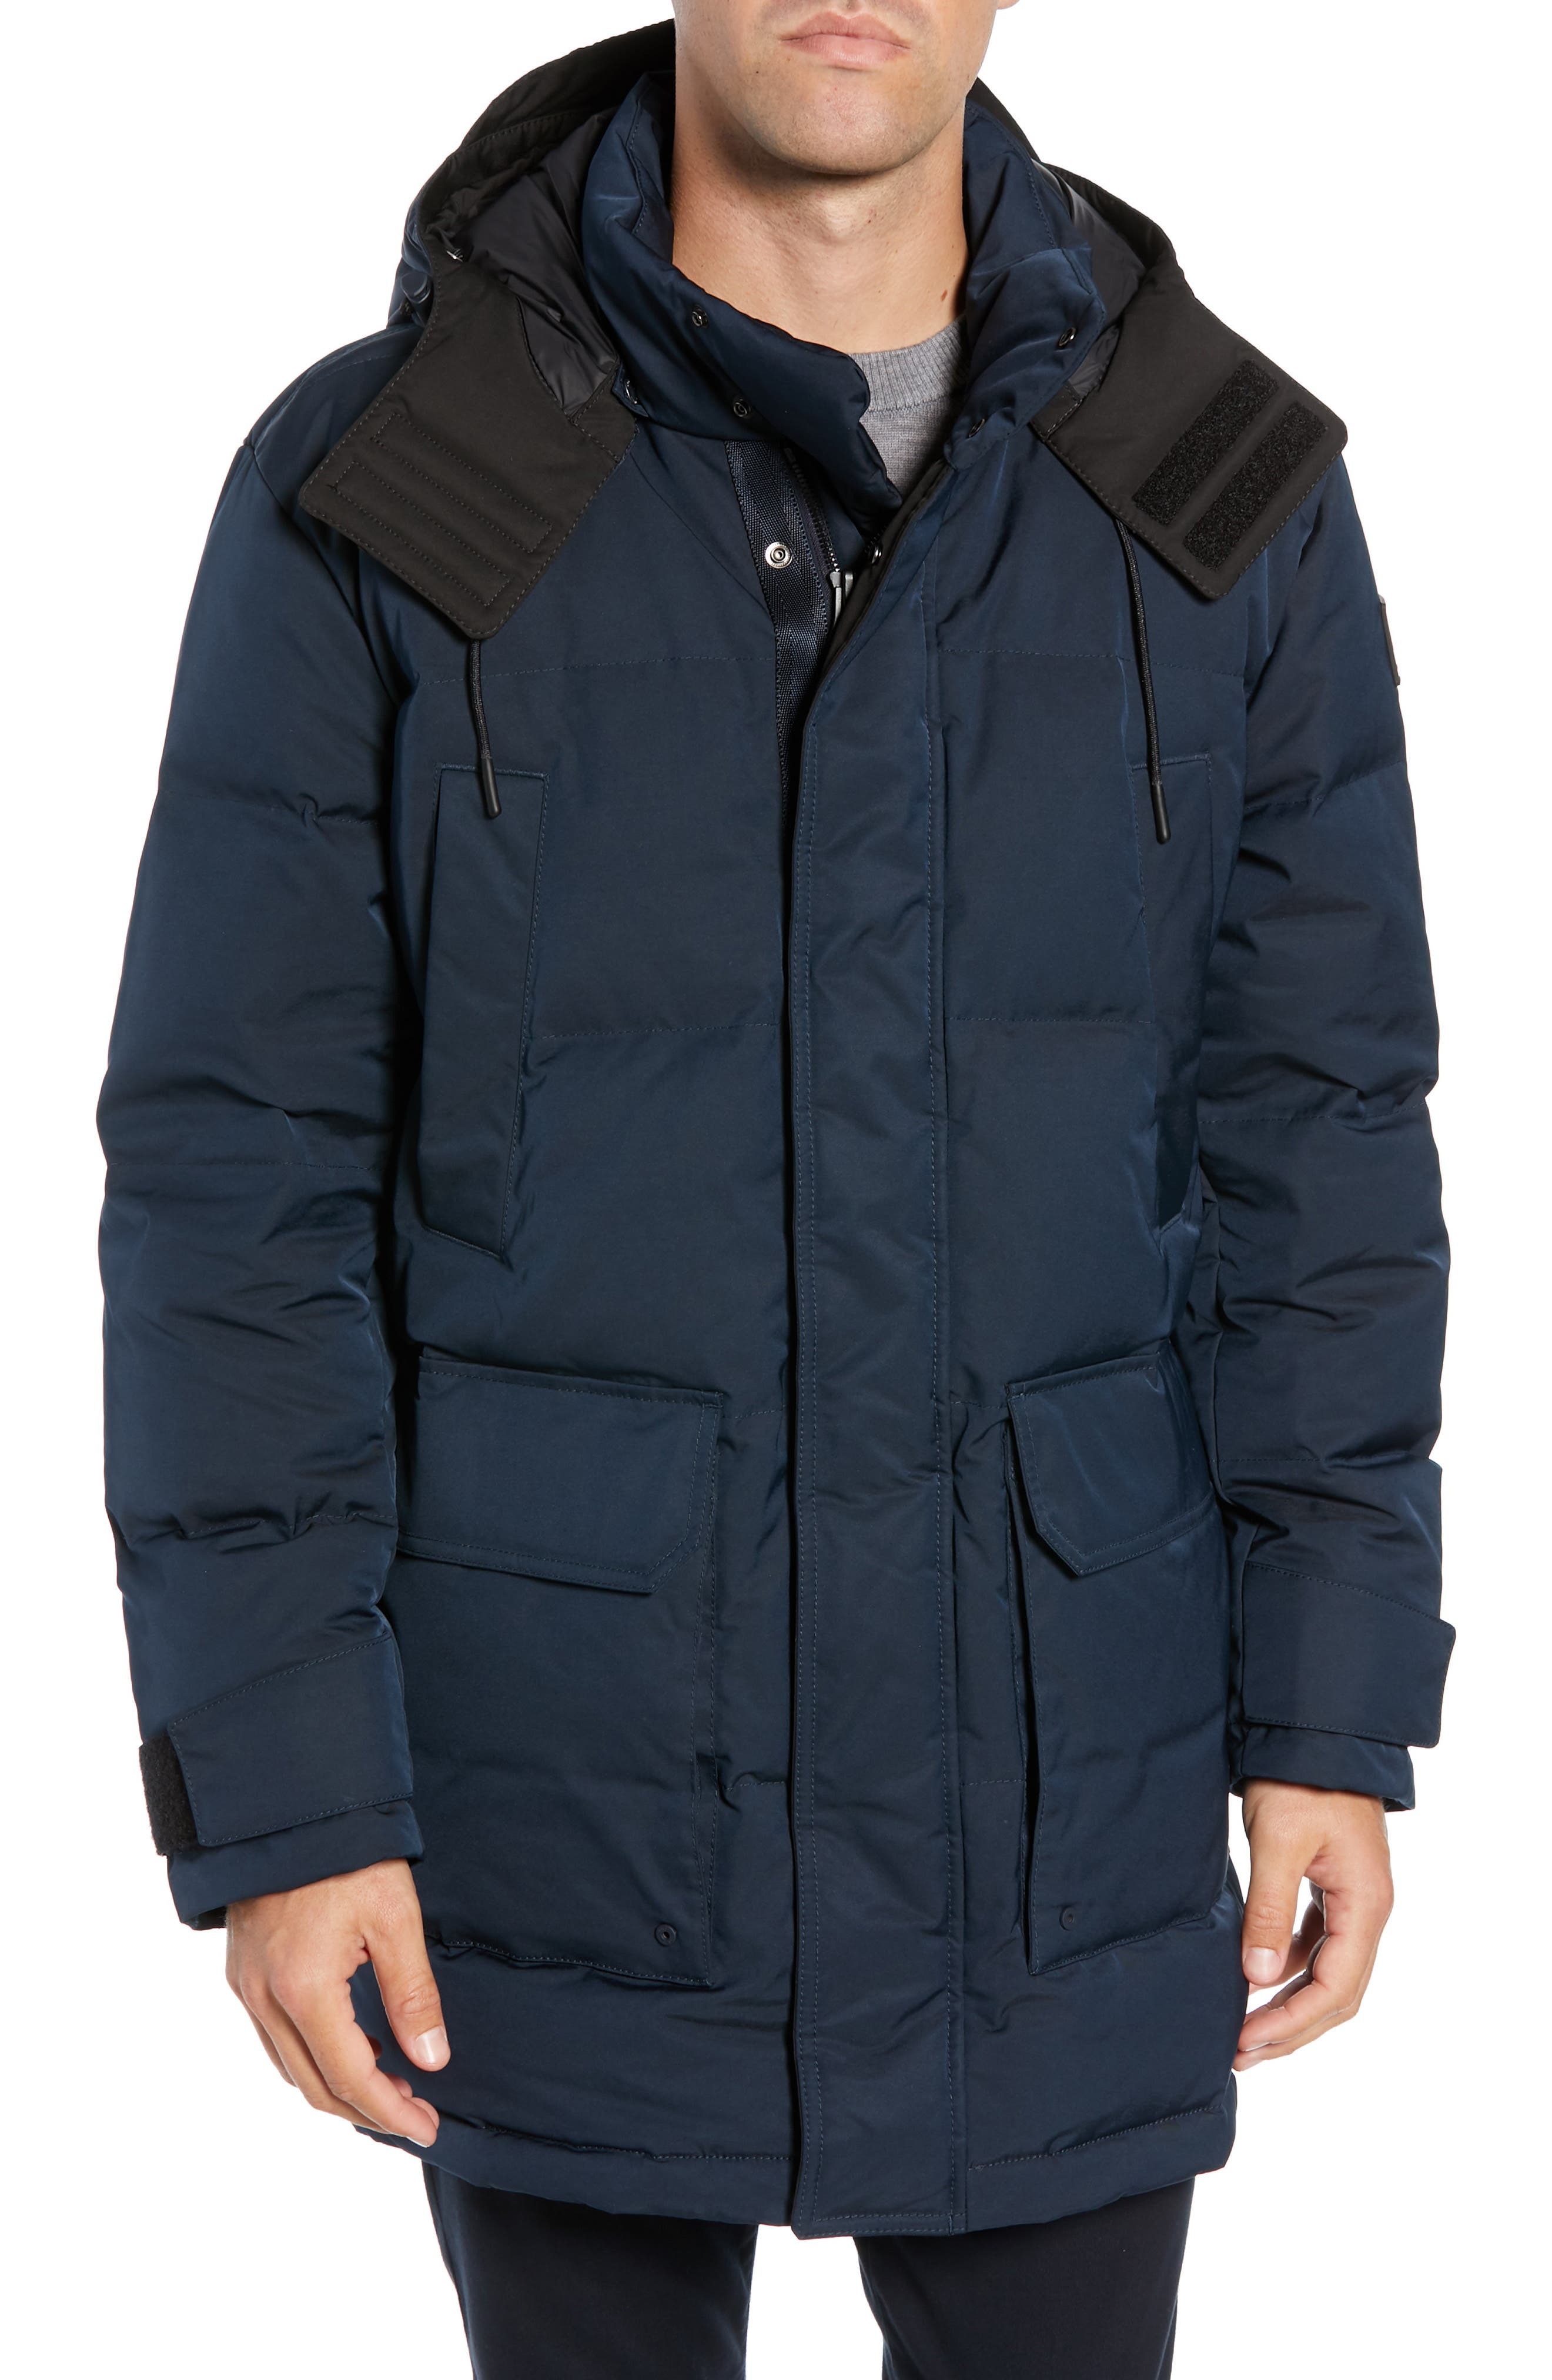 Onek Regular Fit Twill Puffer Jacket,                             Alternate thumbnail 4, color,                             BLUE